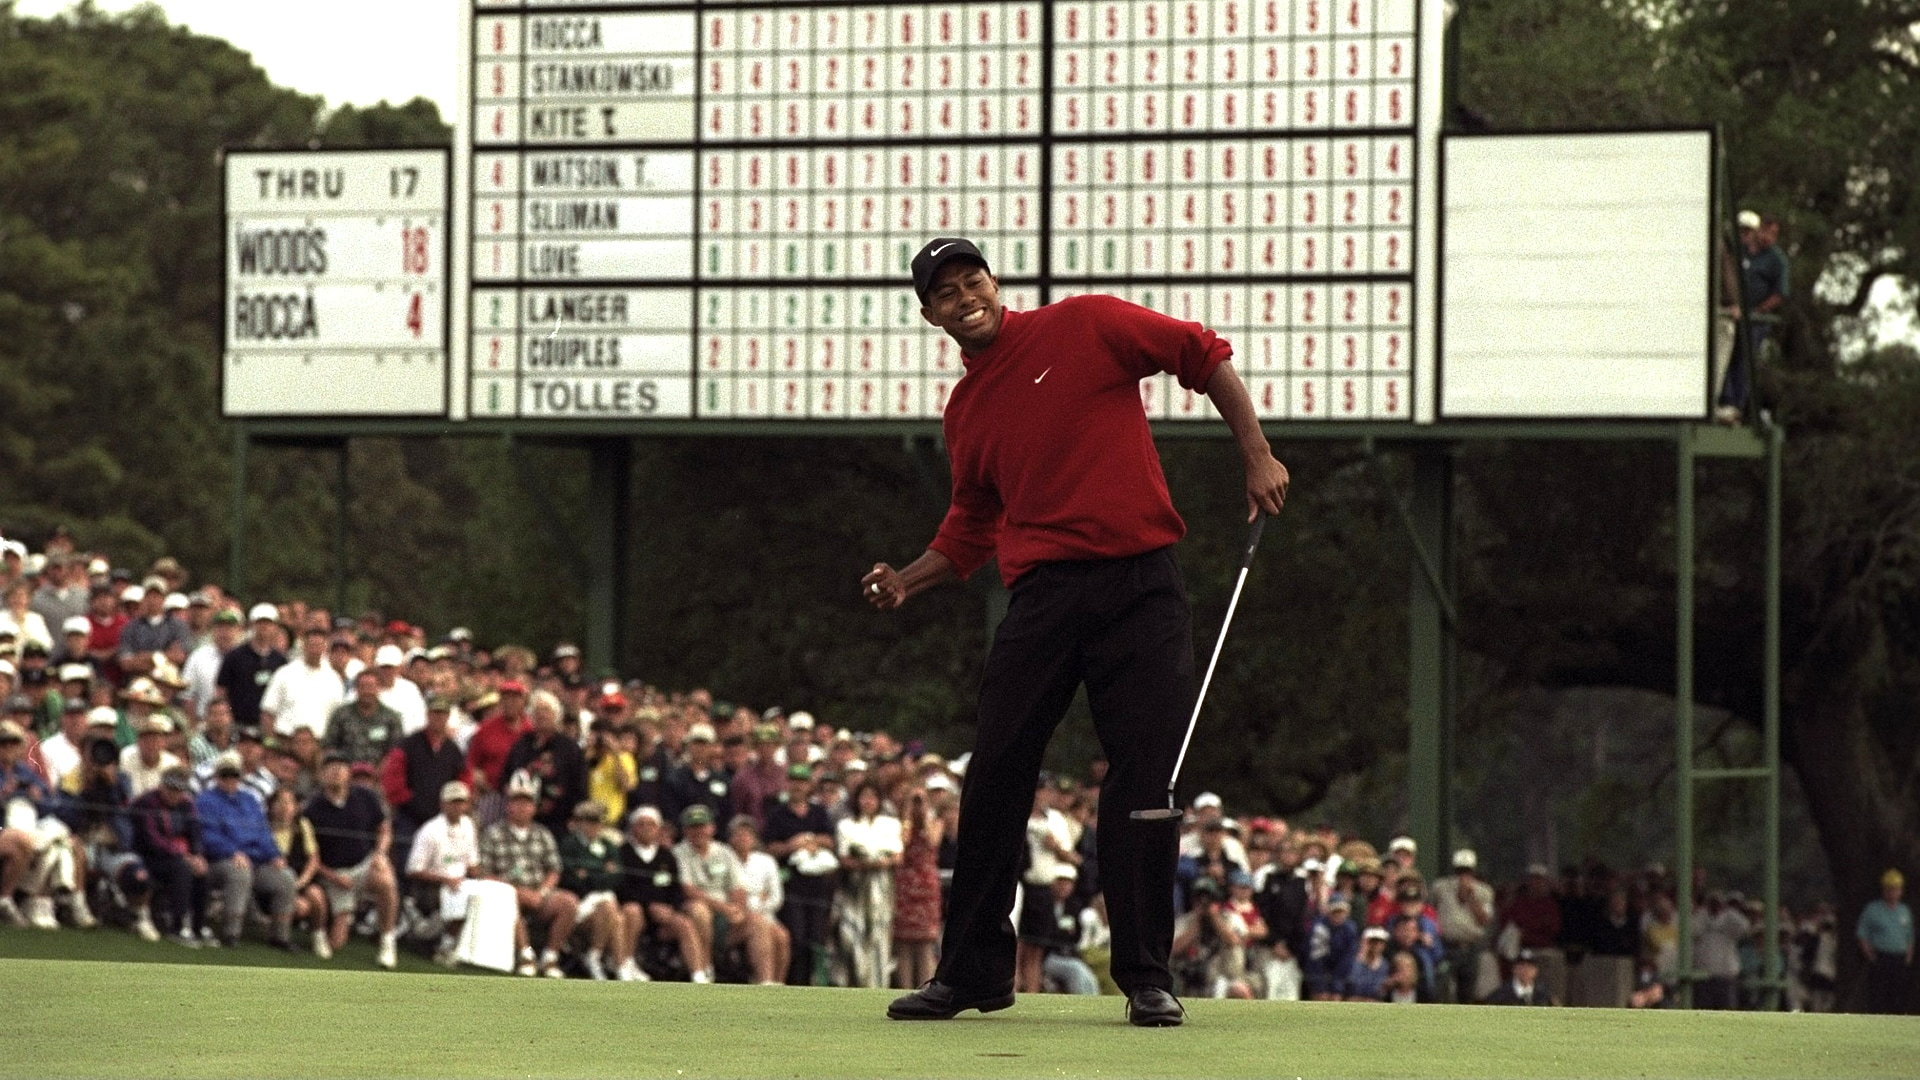 golfchannel.com - The 1997 Masters, and the impact 20 years later